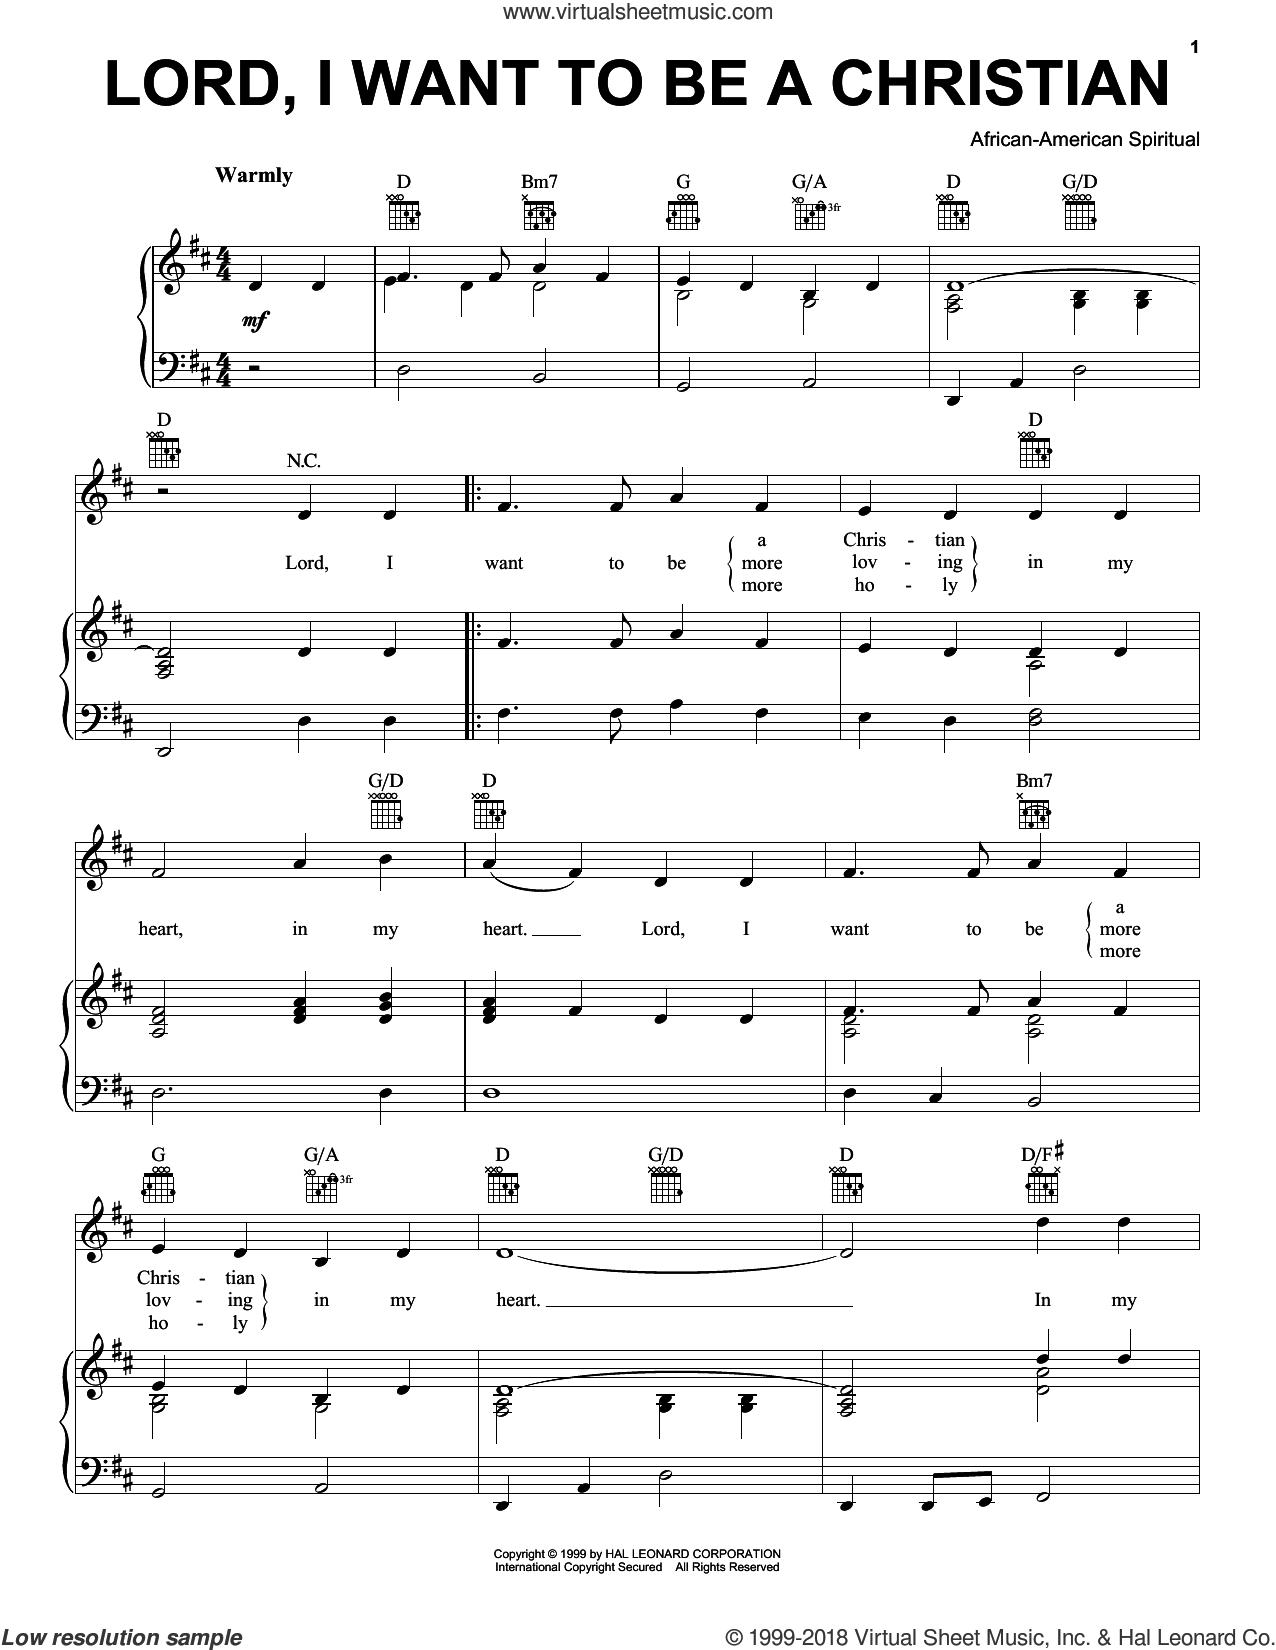 Lord, I Want To Be A Christian sheet music for voice, piano or guitar, intermediate voice, piano or guitar. Score Image Preview.